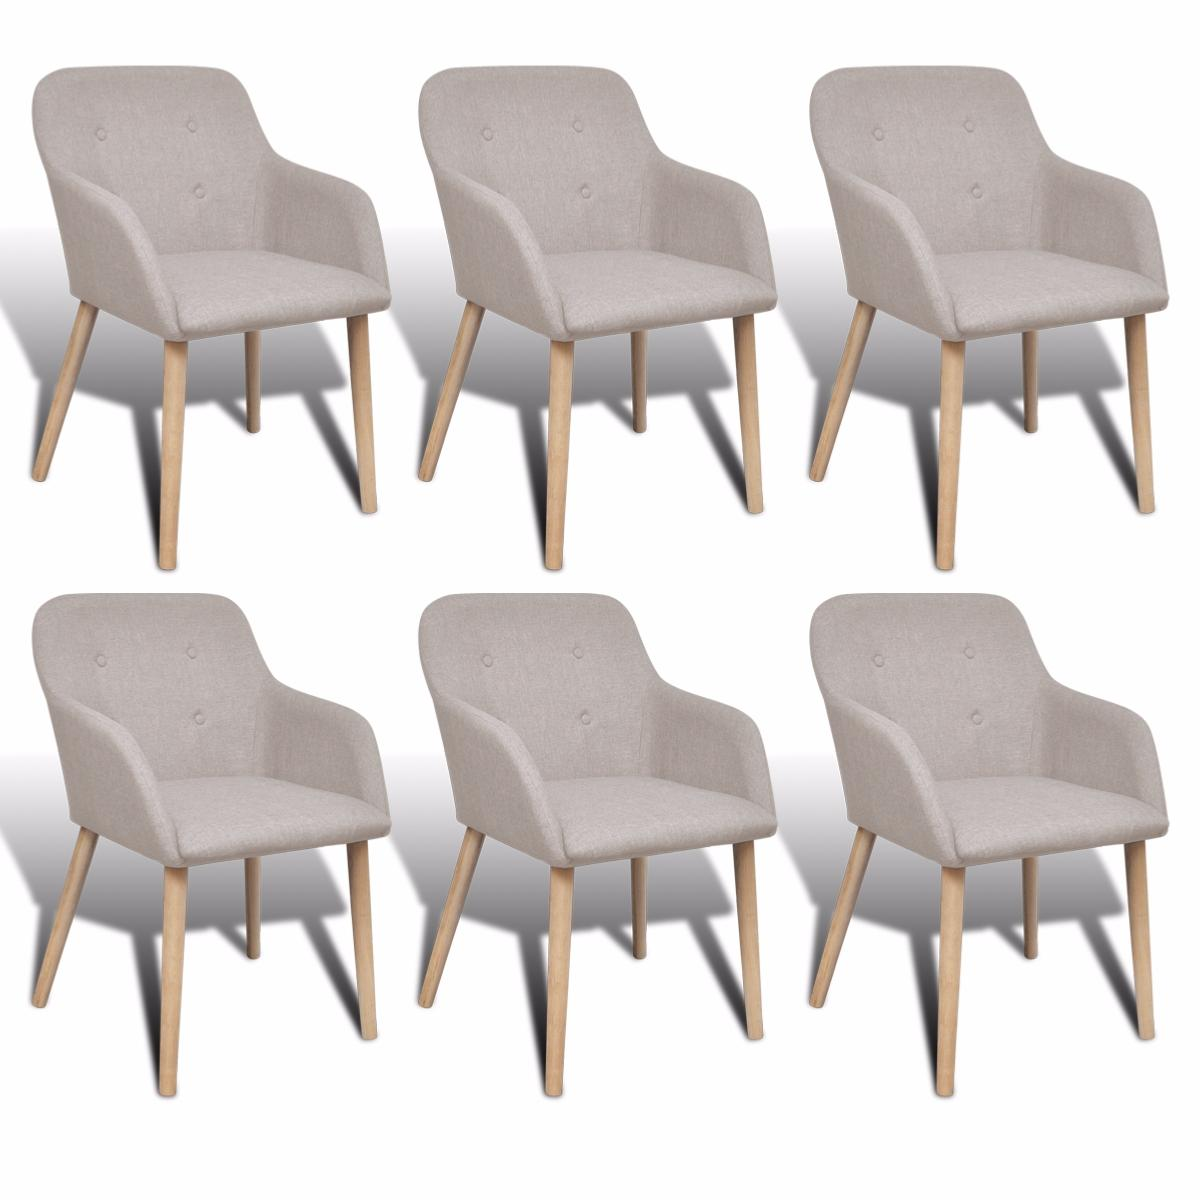 Lot Chaise Scandinave Lot De 6 Chaises Scandinave